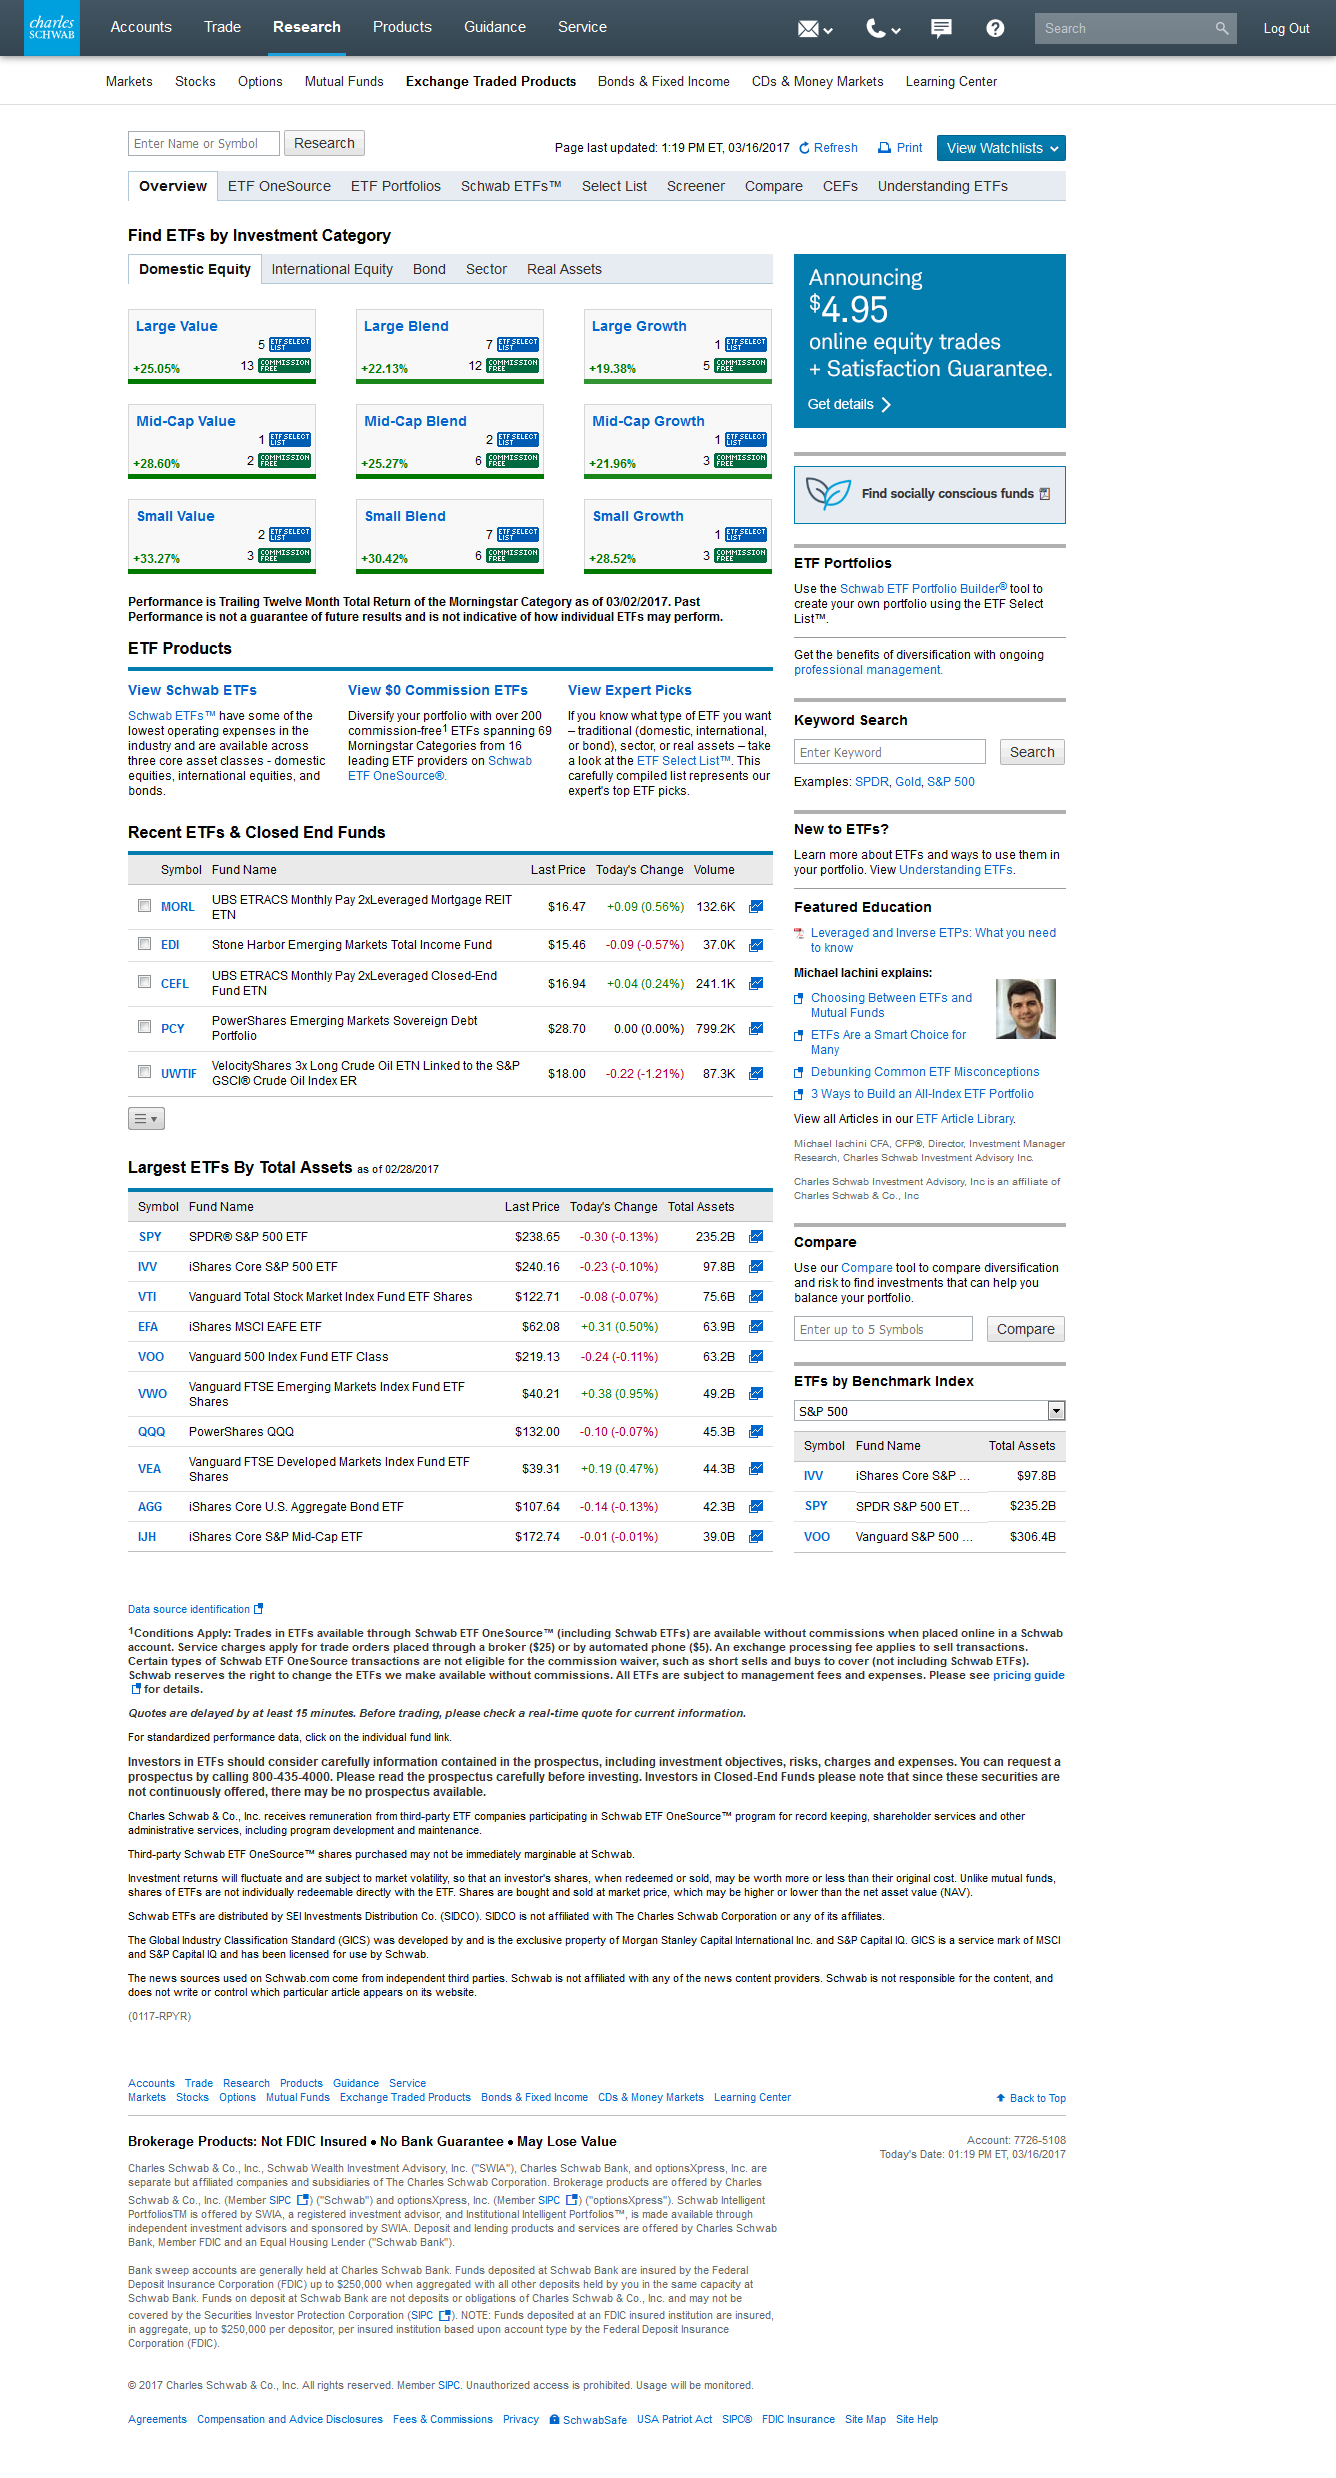 research and tools available for exchanged-traded funds on a schwab brokerage account